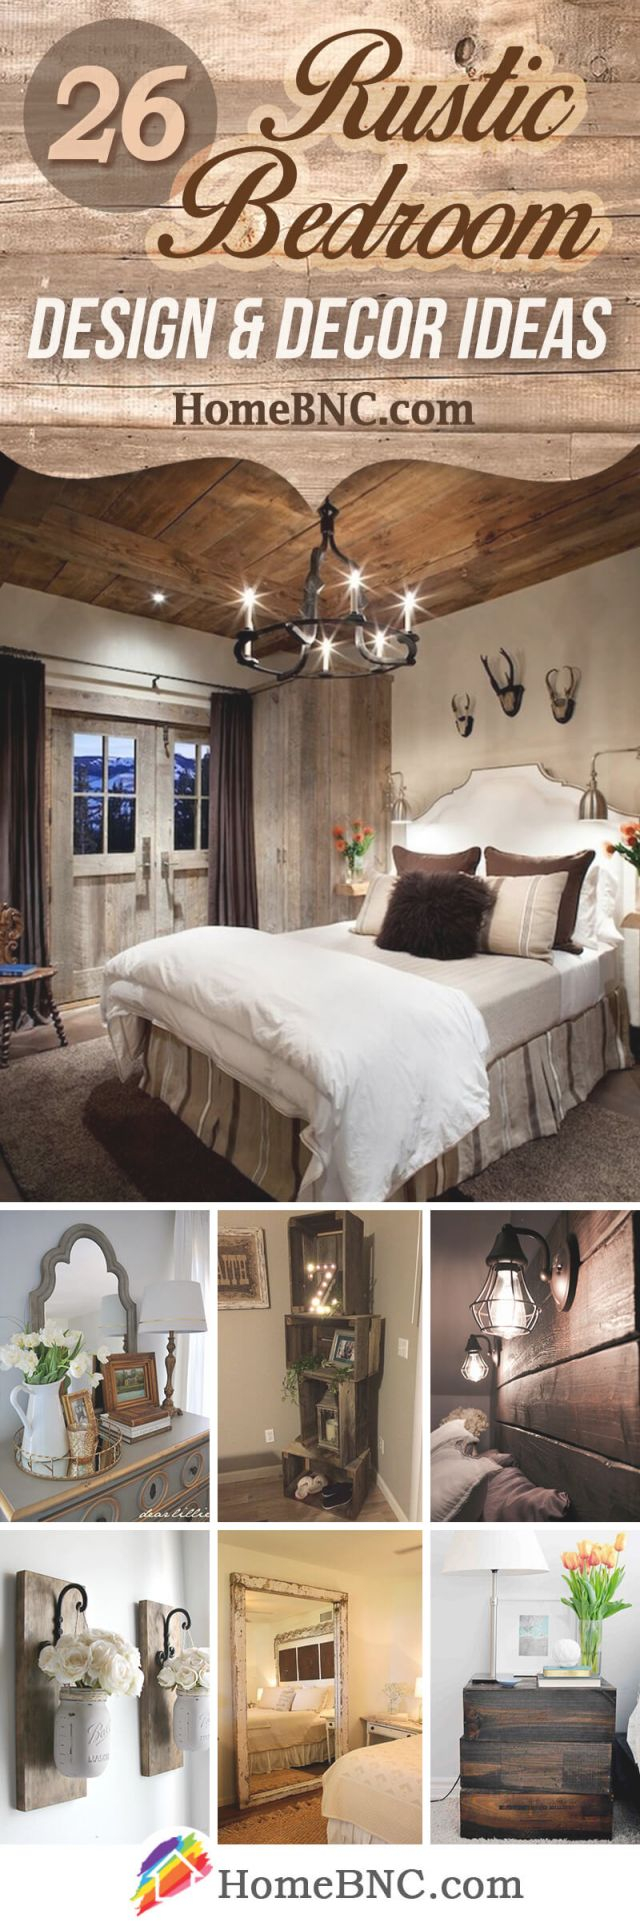 26 Best Rustic Bedroom Decor Ideas And Designs For 2020 throughout Unique Rustic Bedroom Decorating Ideas